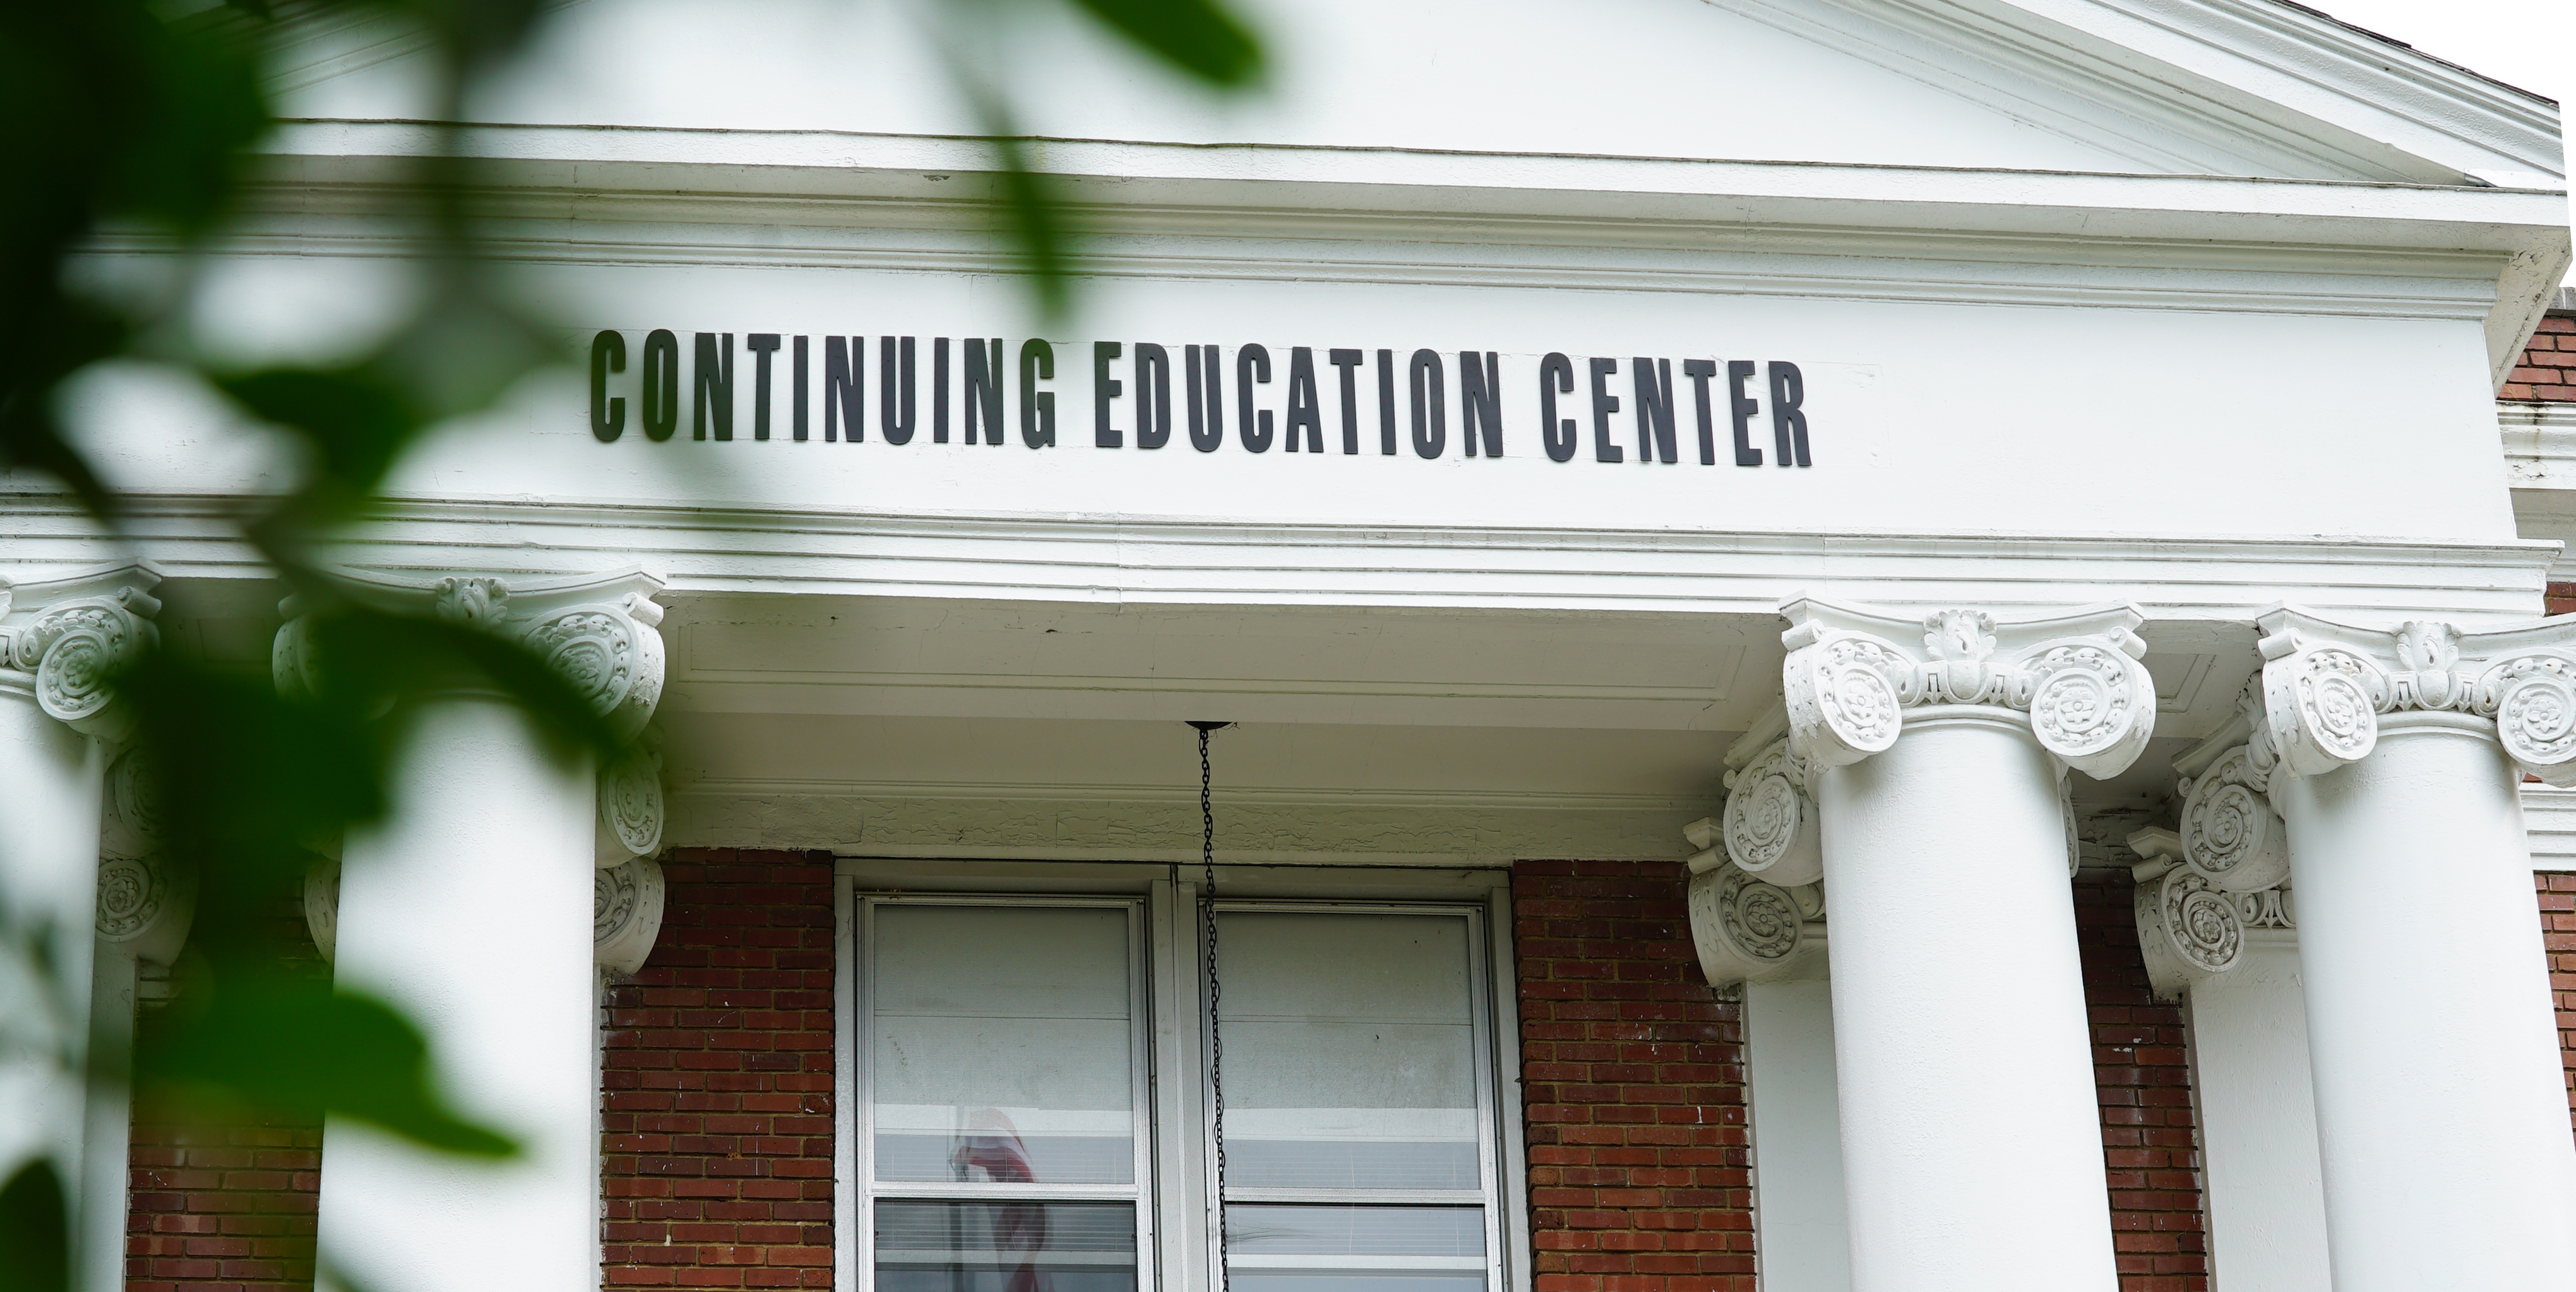 Mitchell's Continuing Education Center building